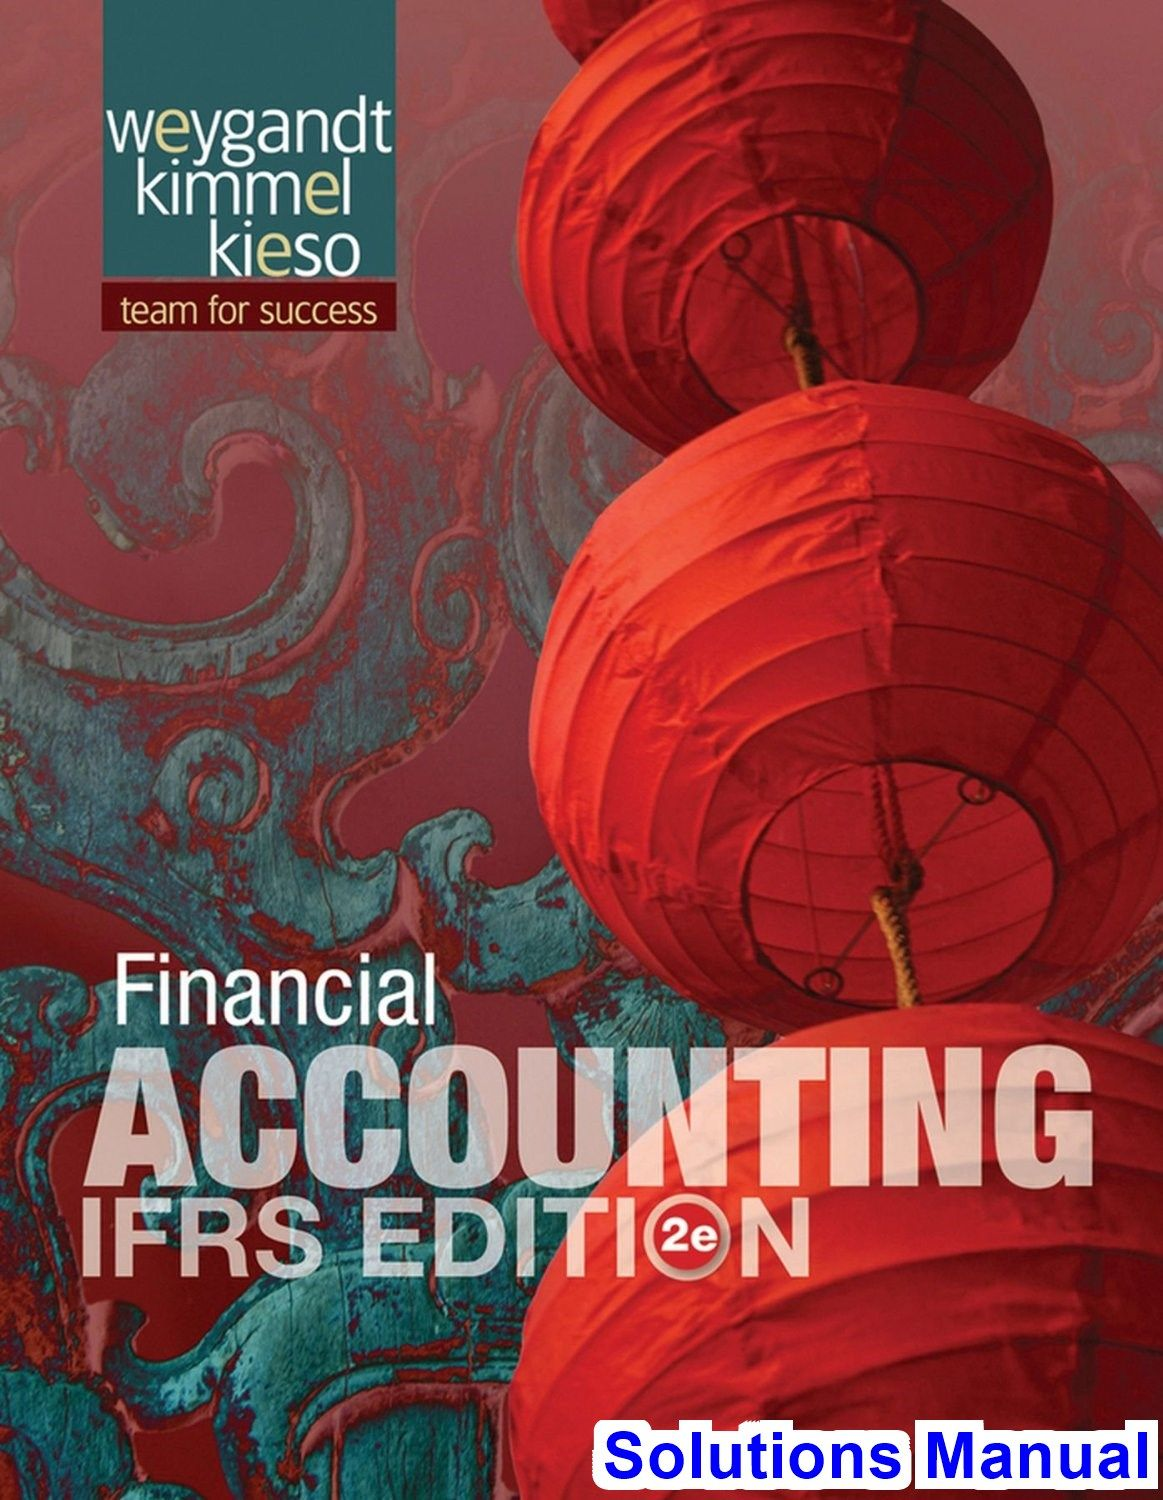 Solutions Manual for Financial Accounting IFRS Edition 2nd Edition by  Weygandt